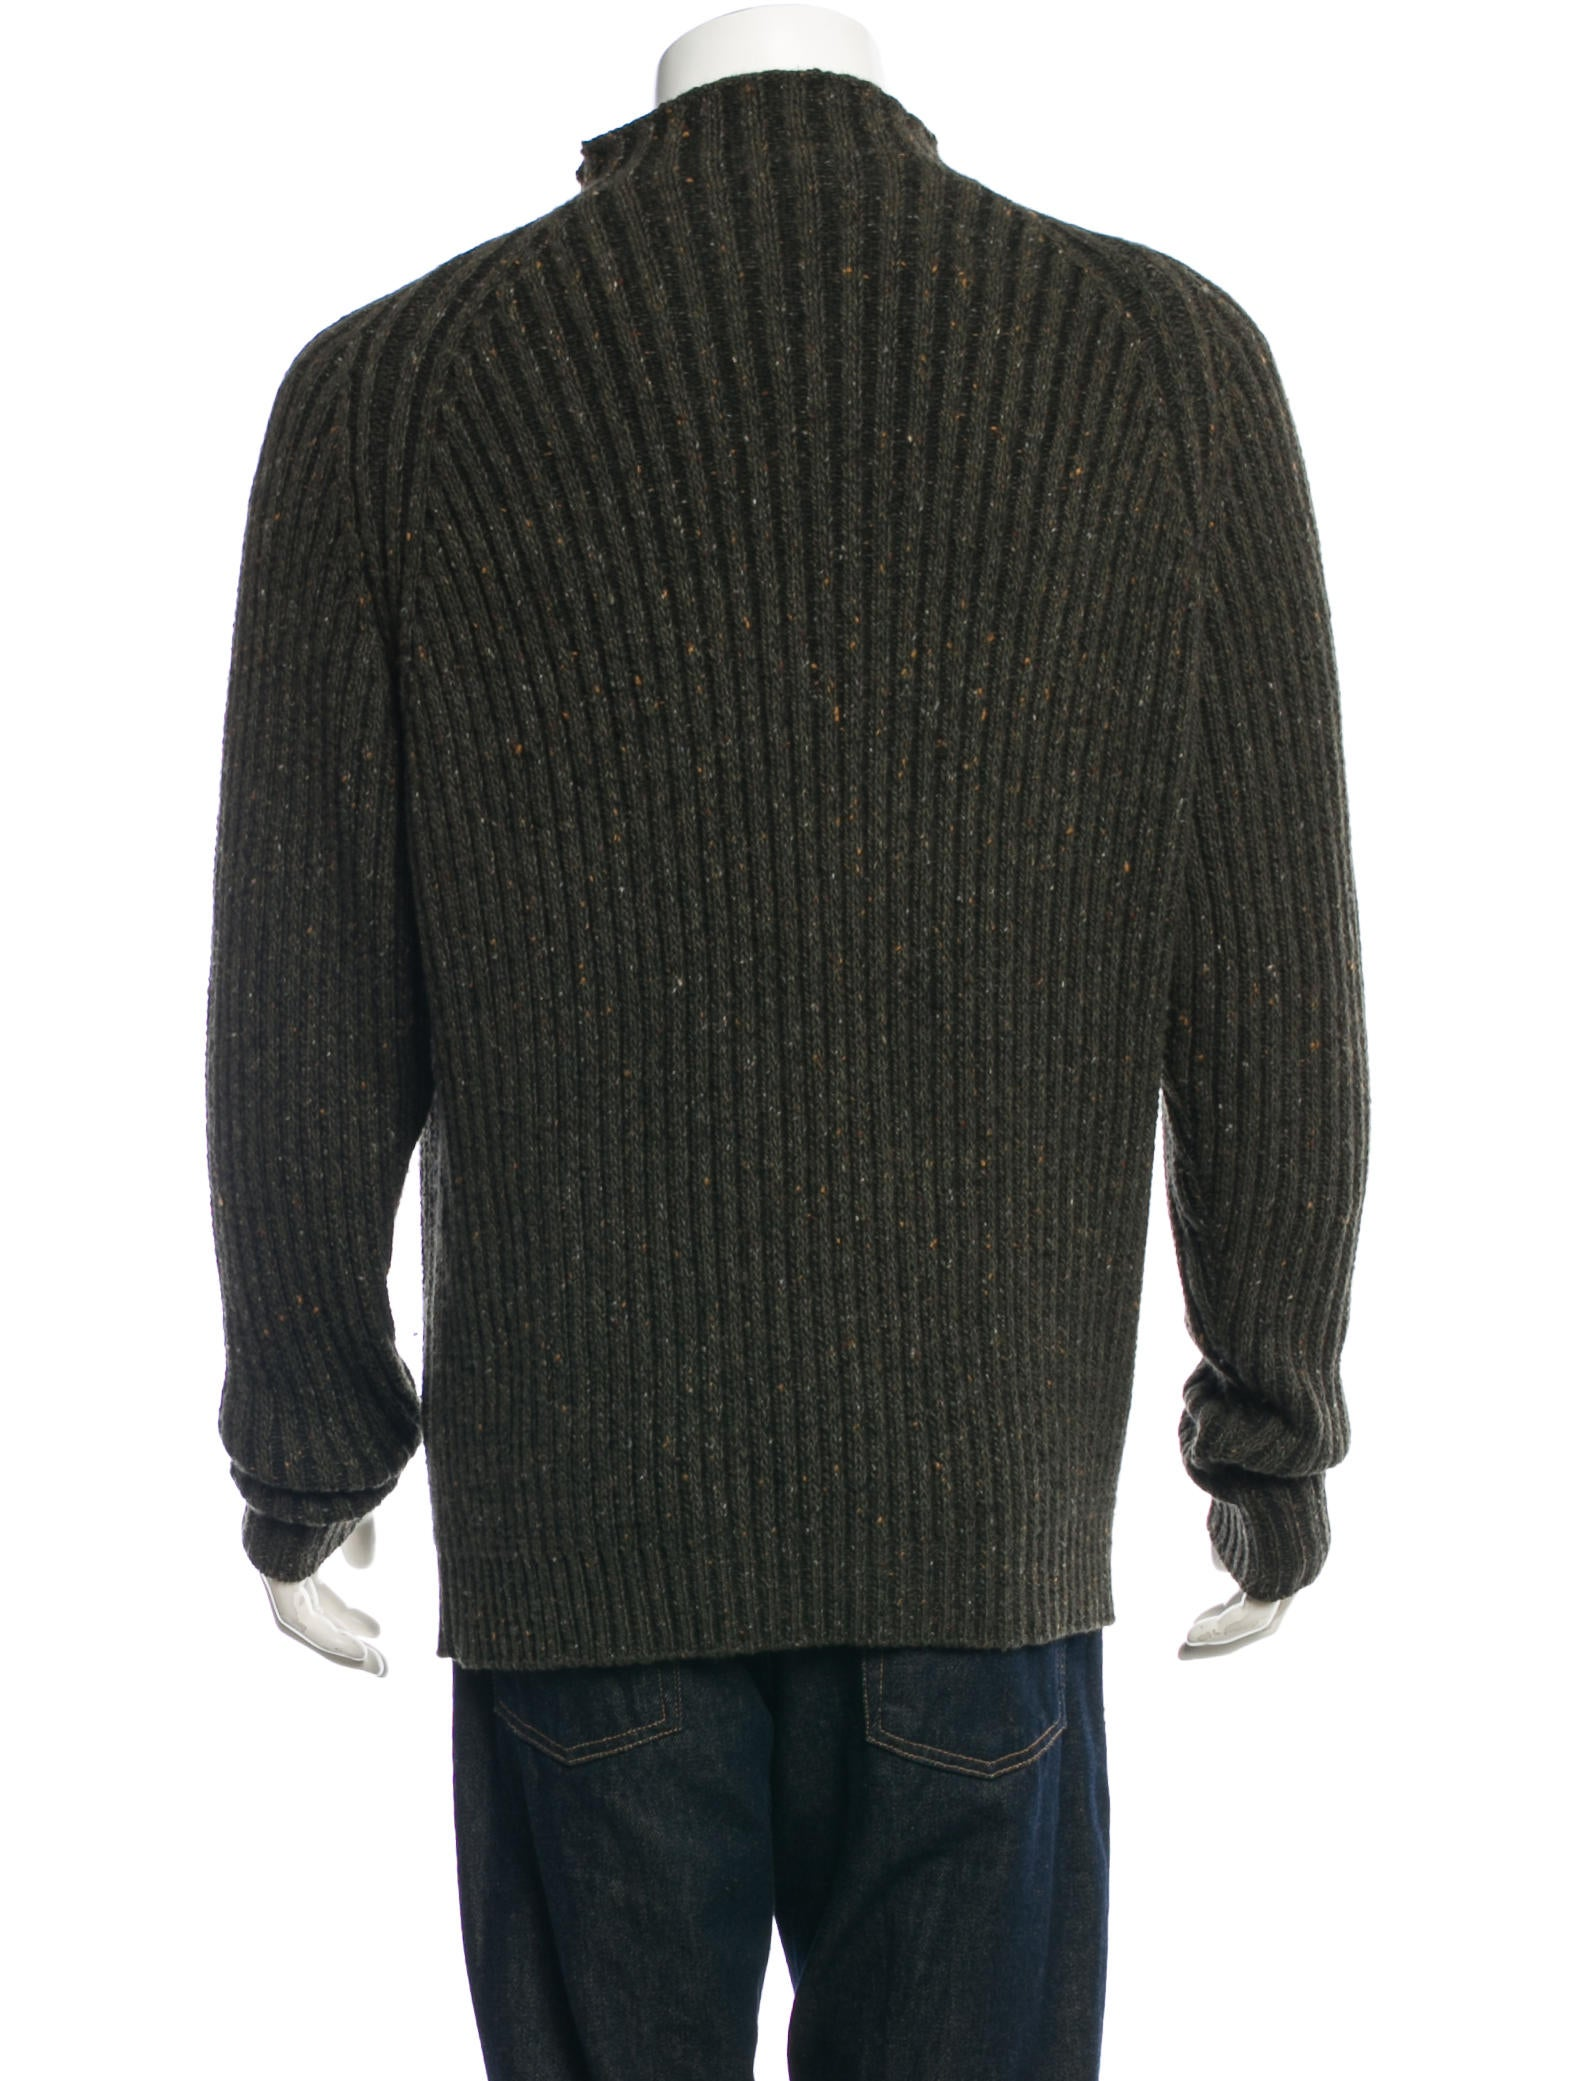 Wool Sweater Grey: Dunhill Cashmere Wool Sweater - Clothing - DLL20205